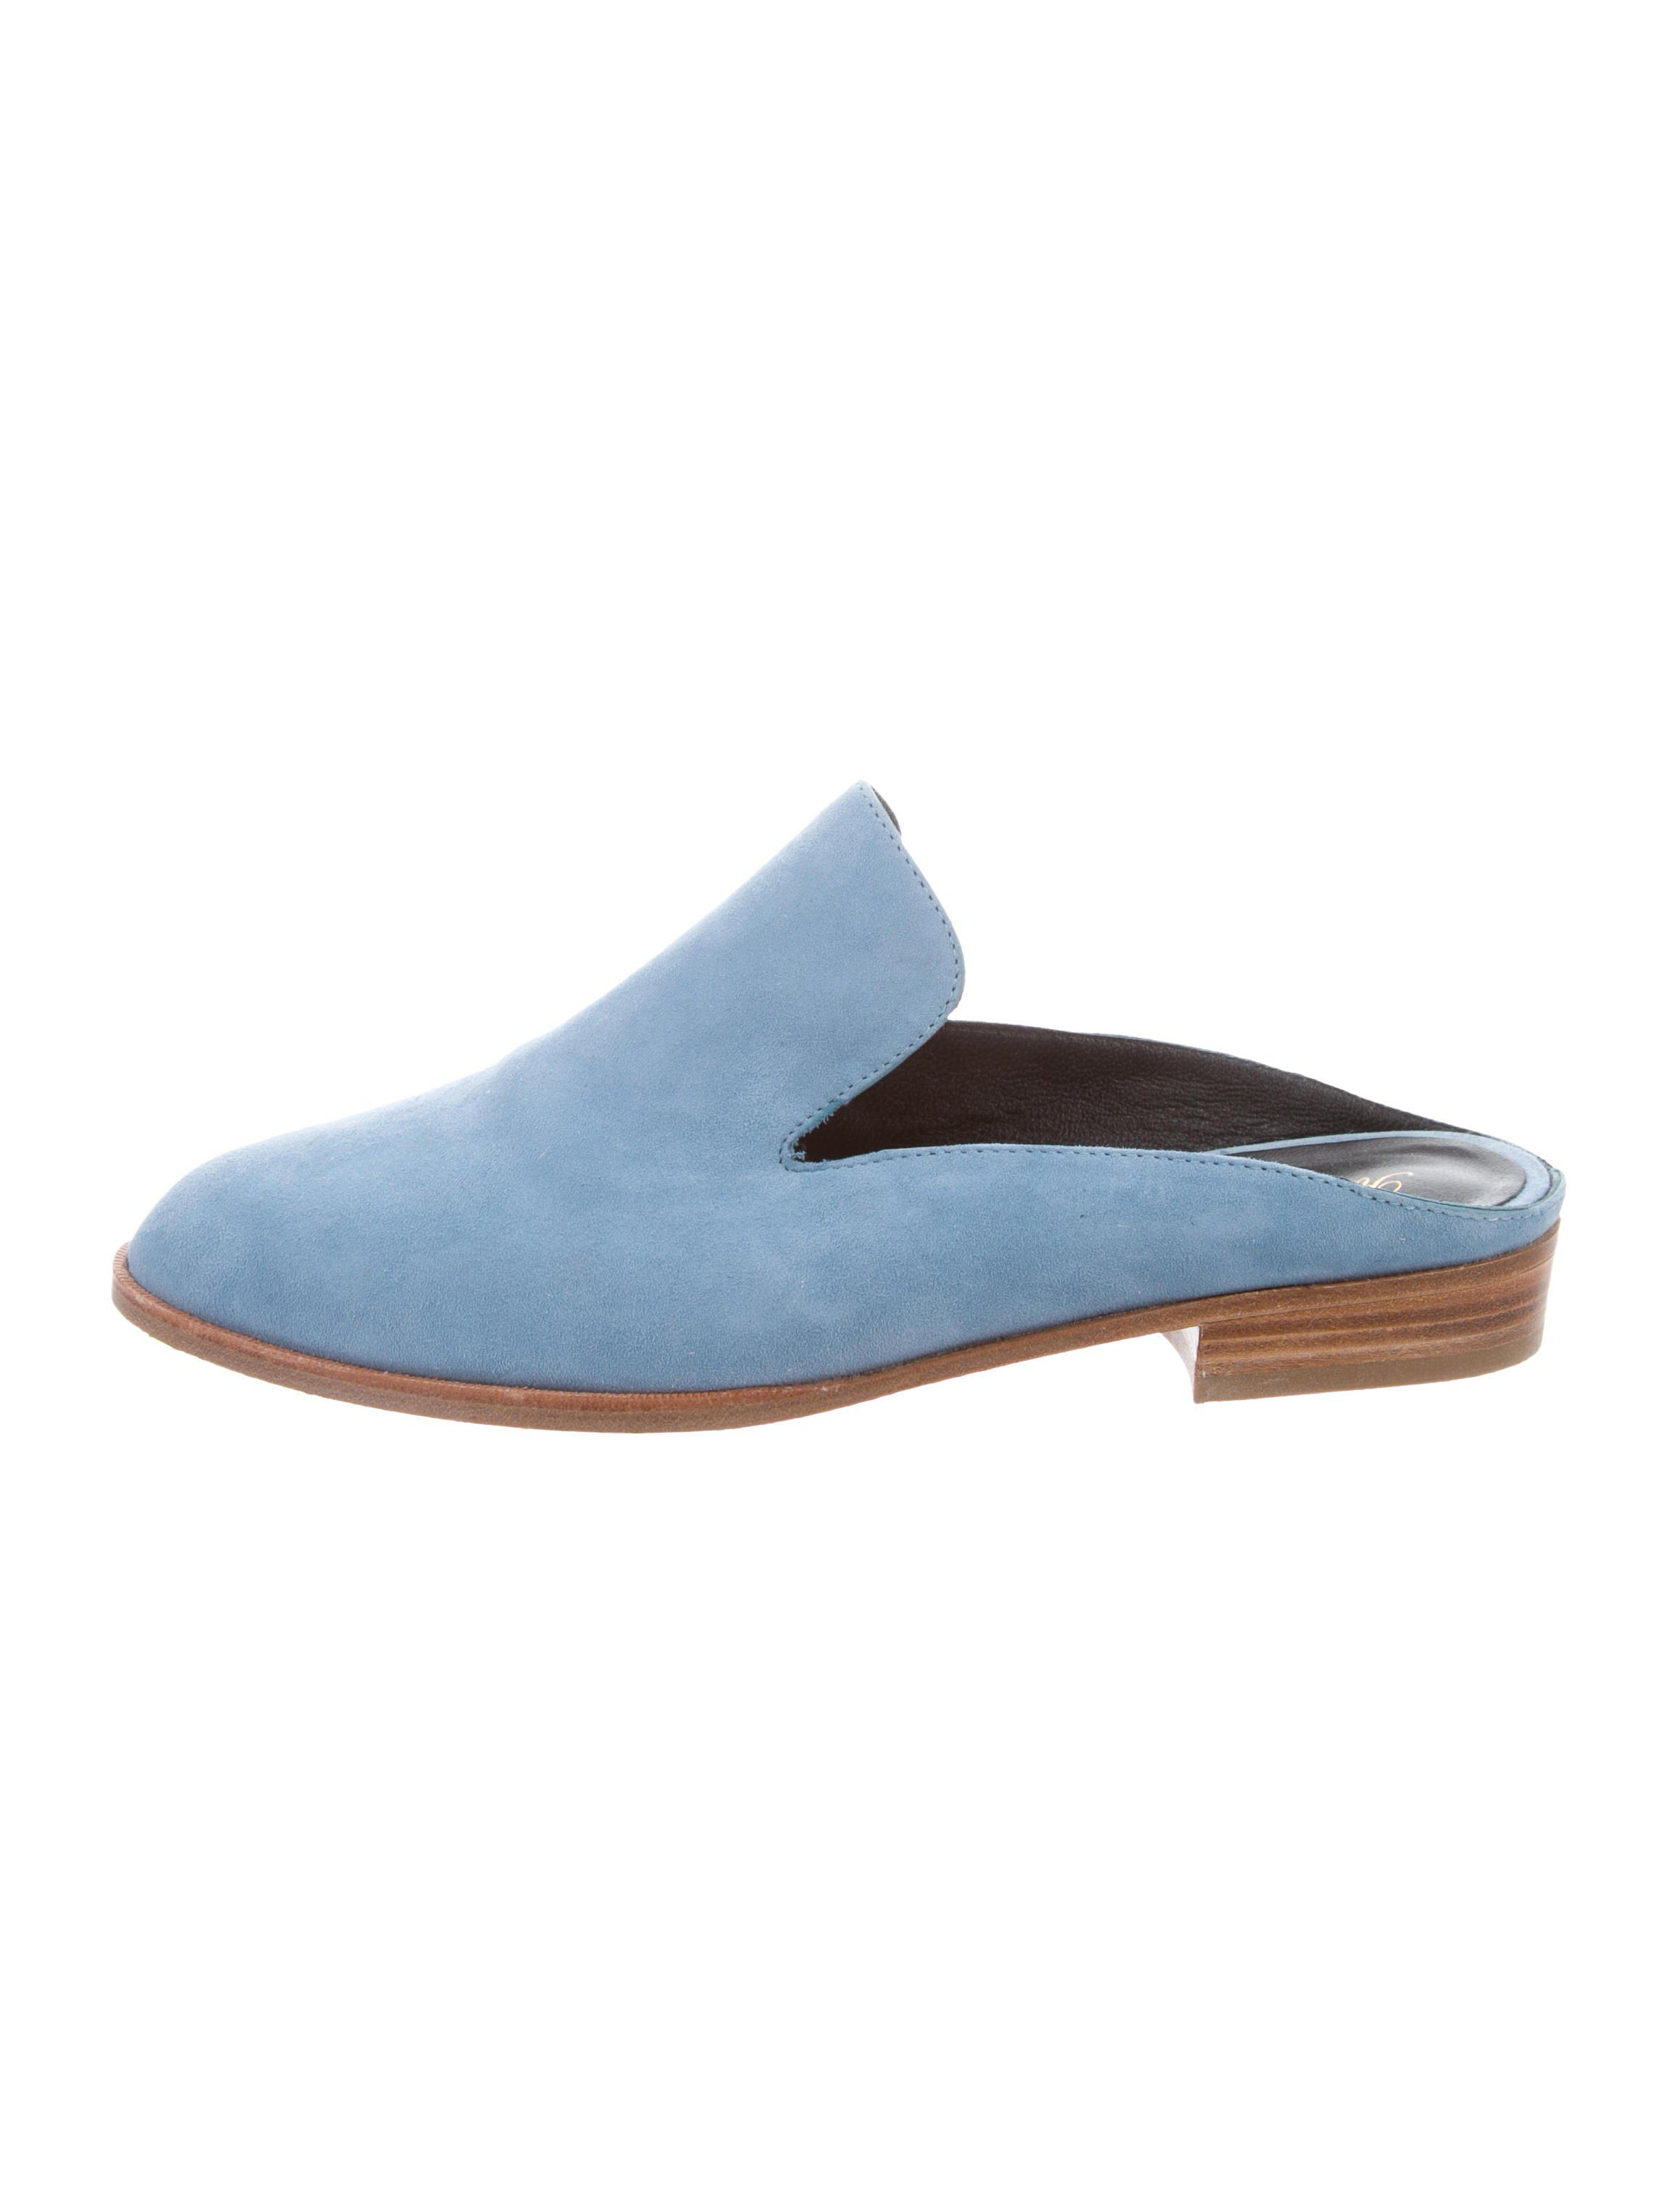 Robert Clergerie Clergerie Paris Embossed Round-Toe Mules